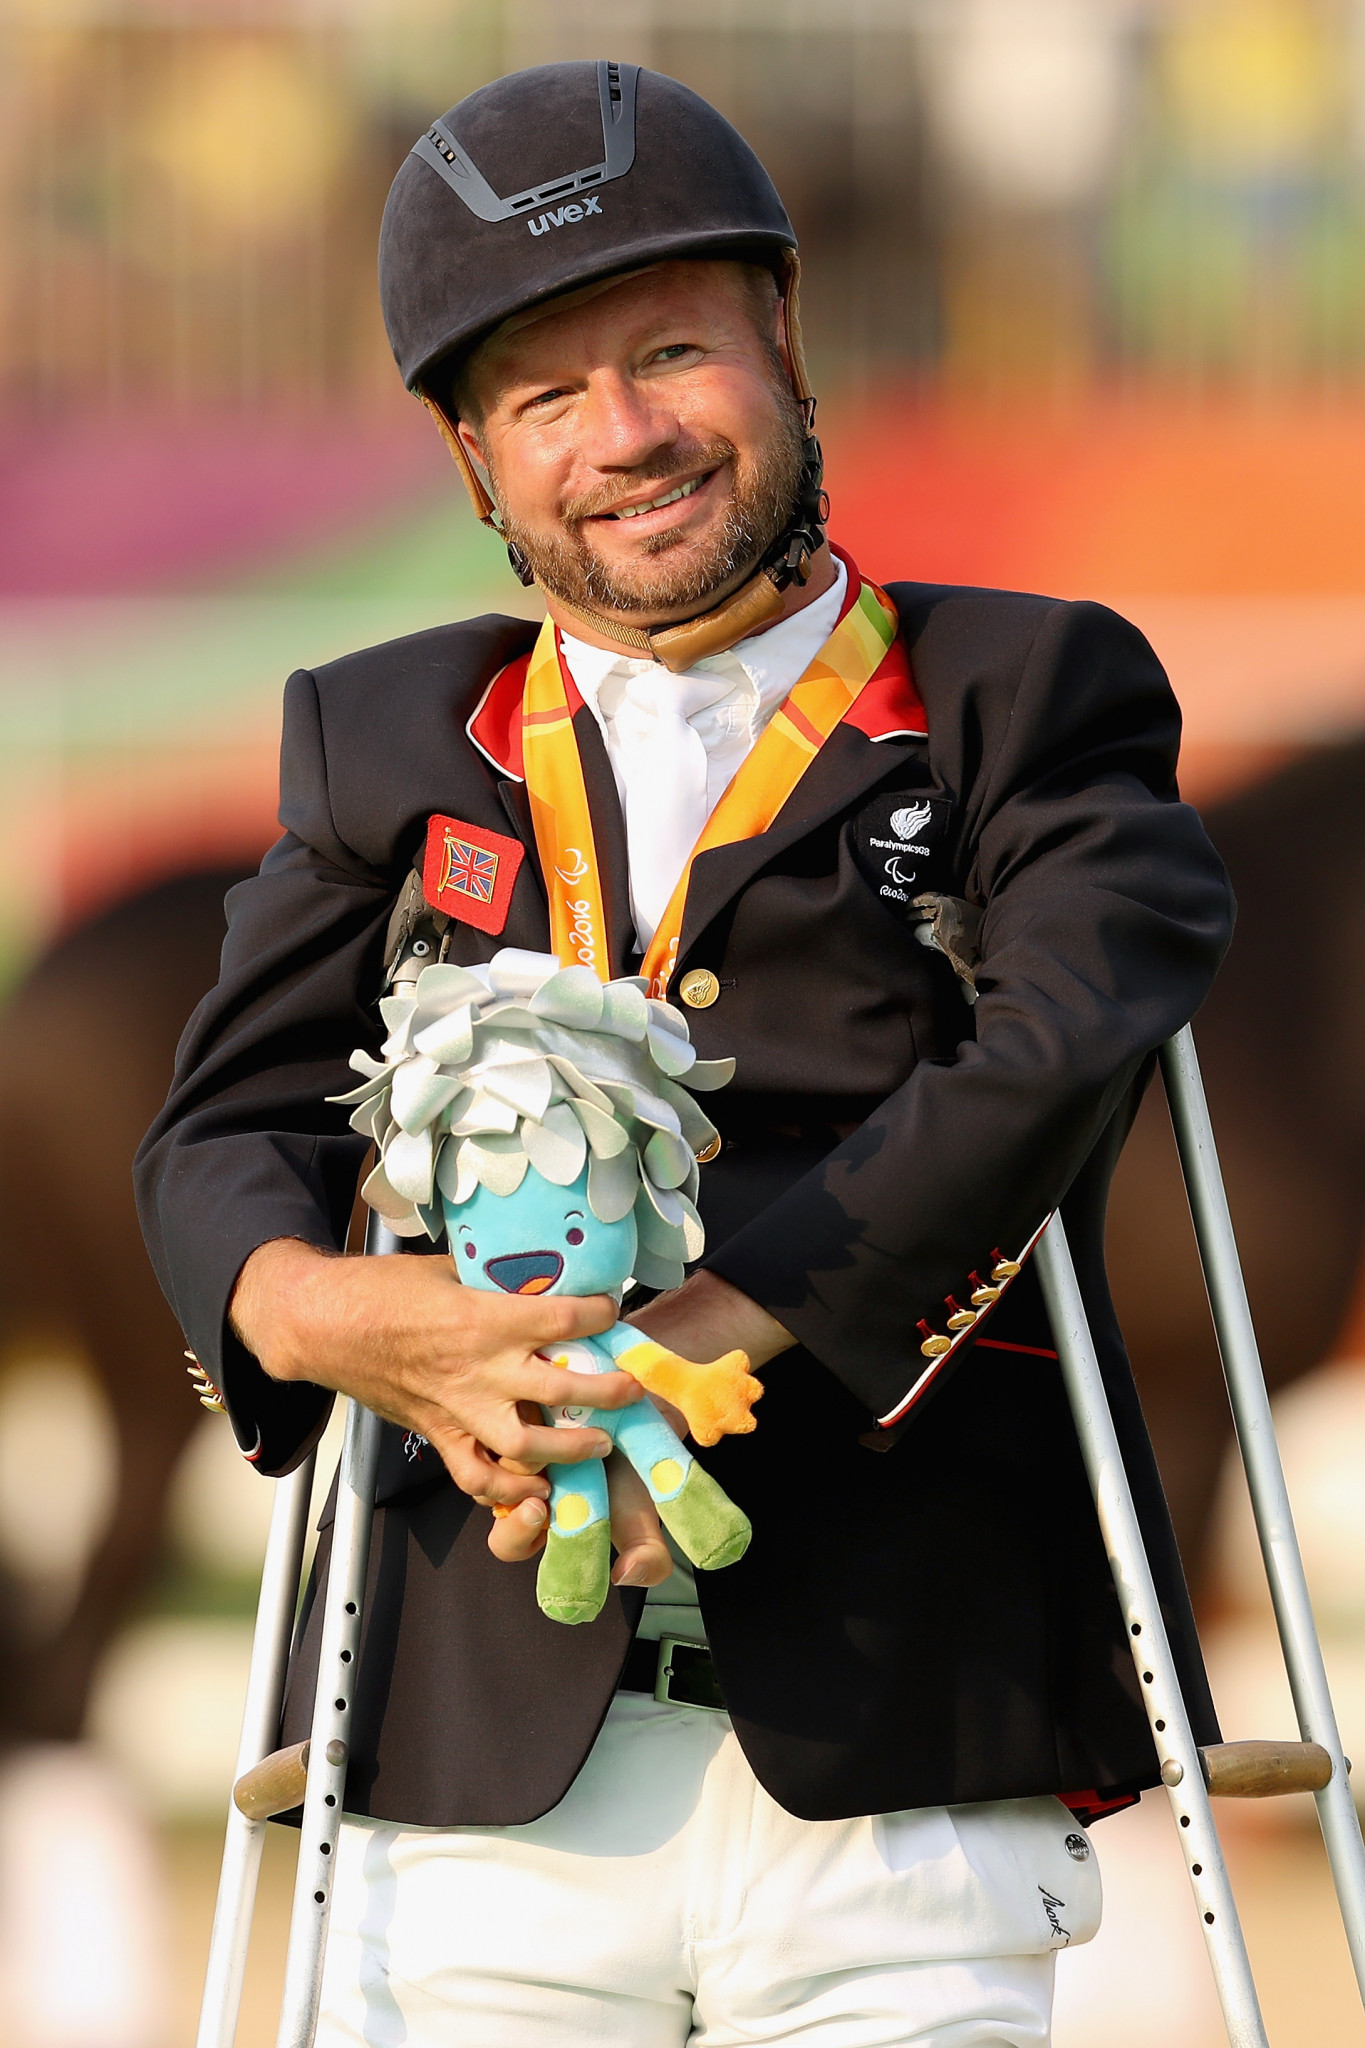 Sir Lee Peason, who has won 11 Paralympic golds in his career, is also on the team ©Getty Images